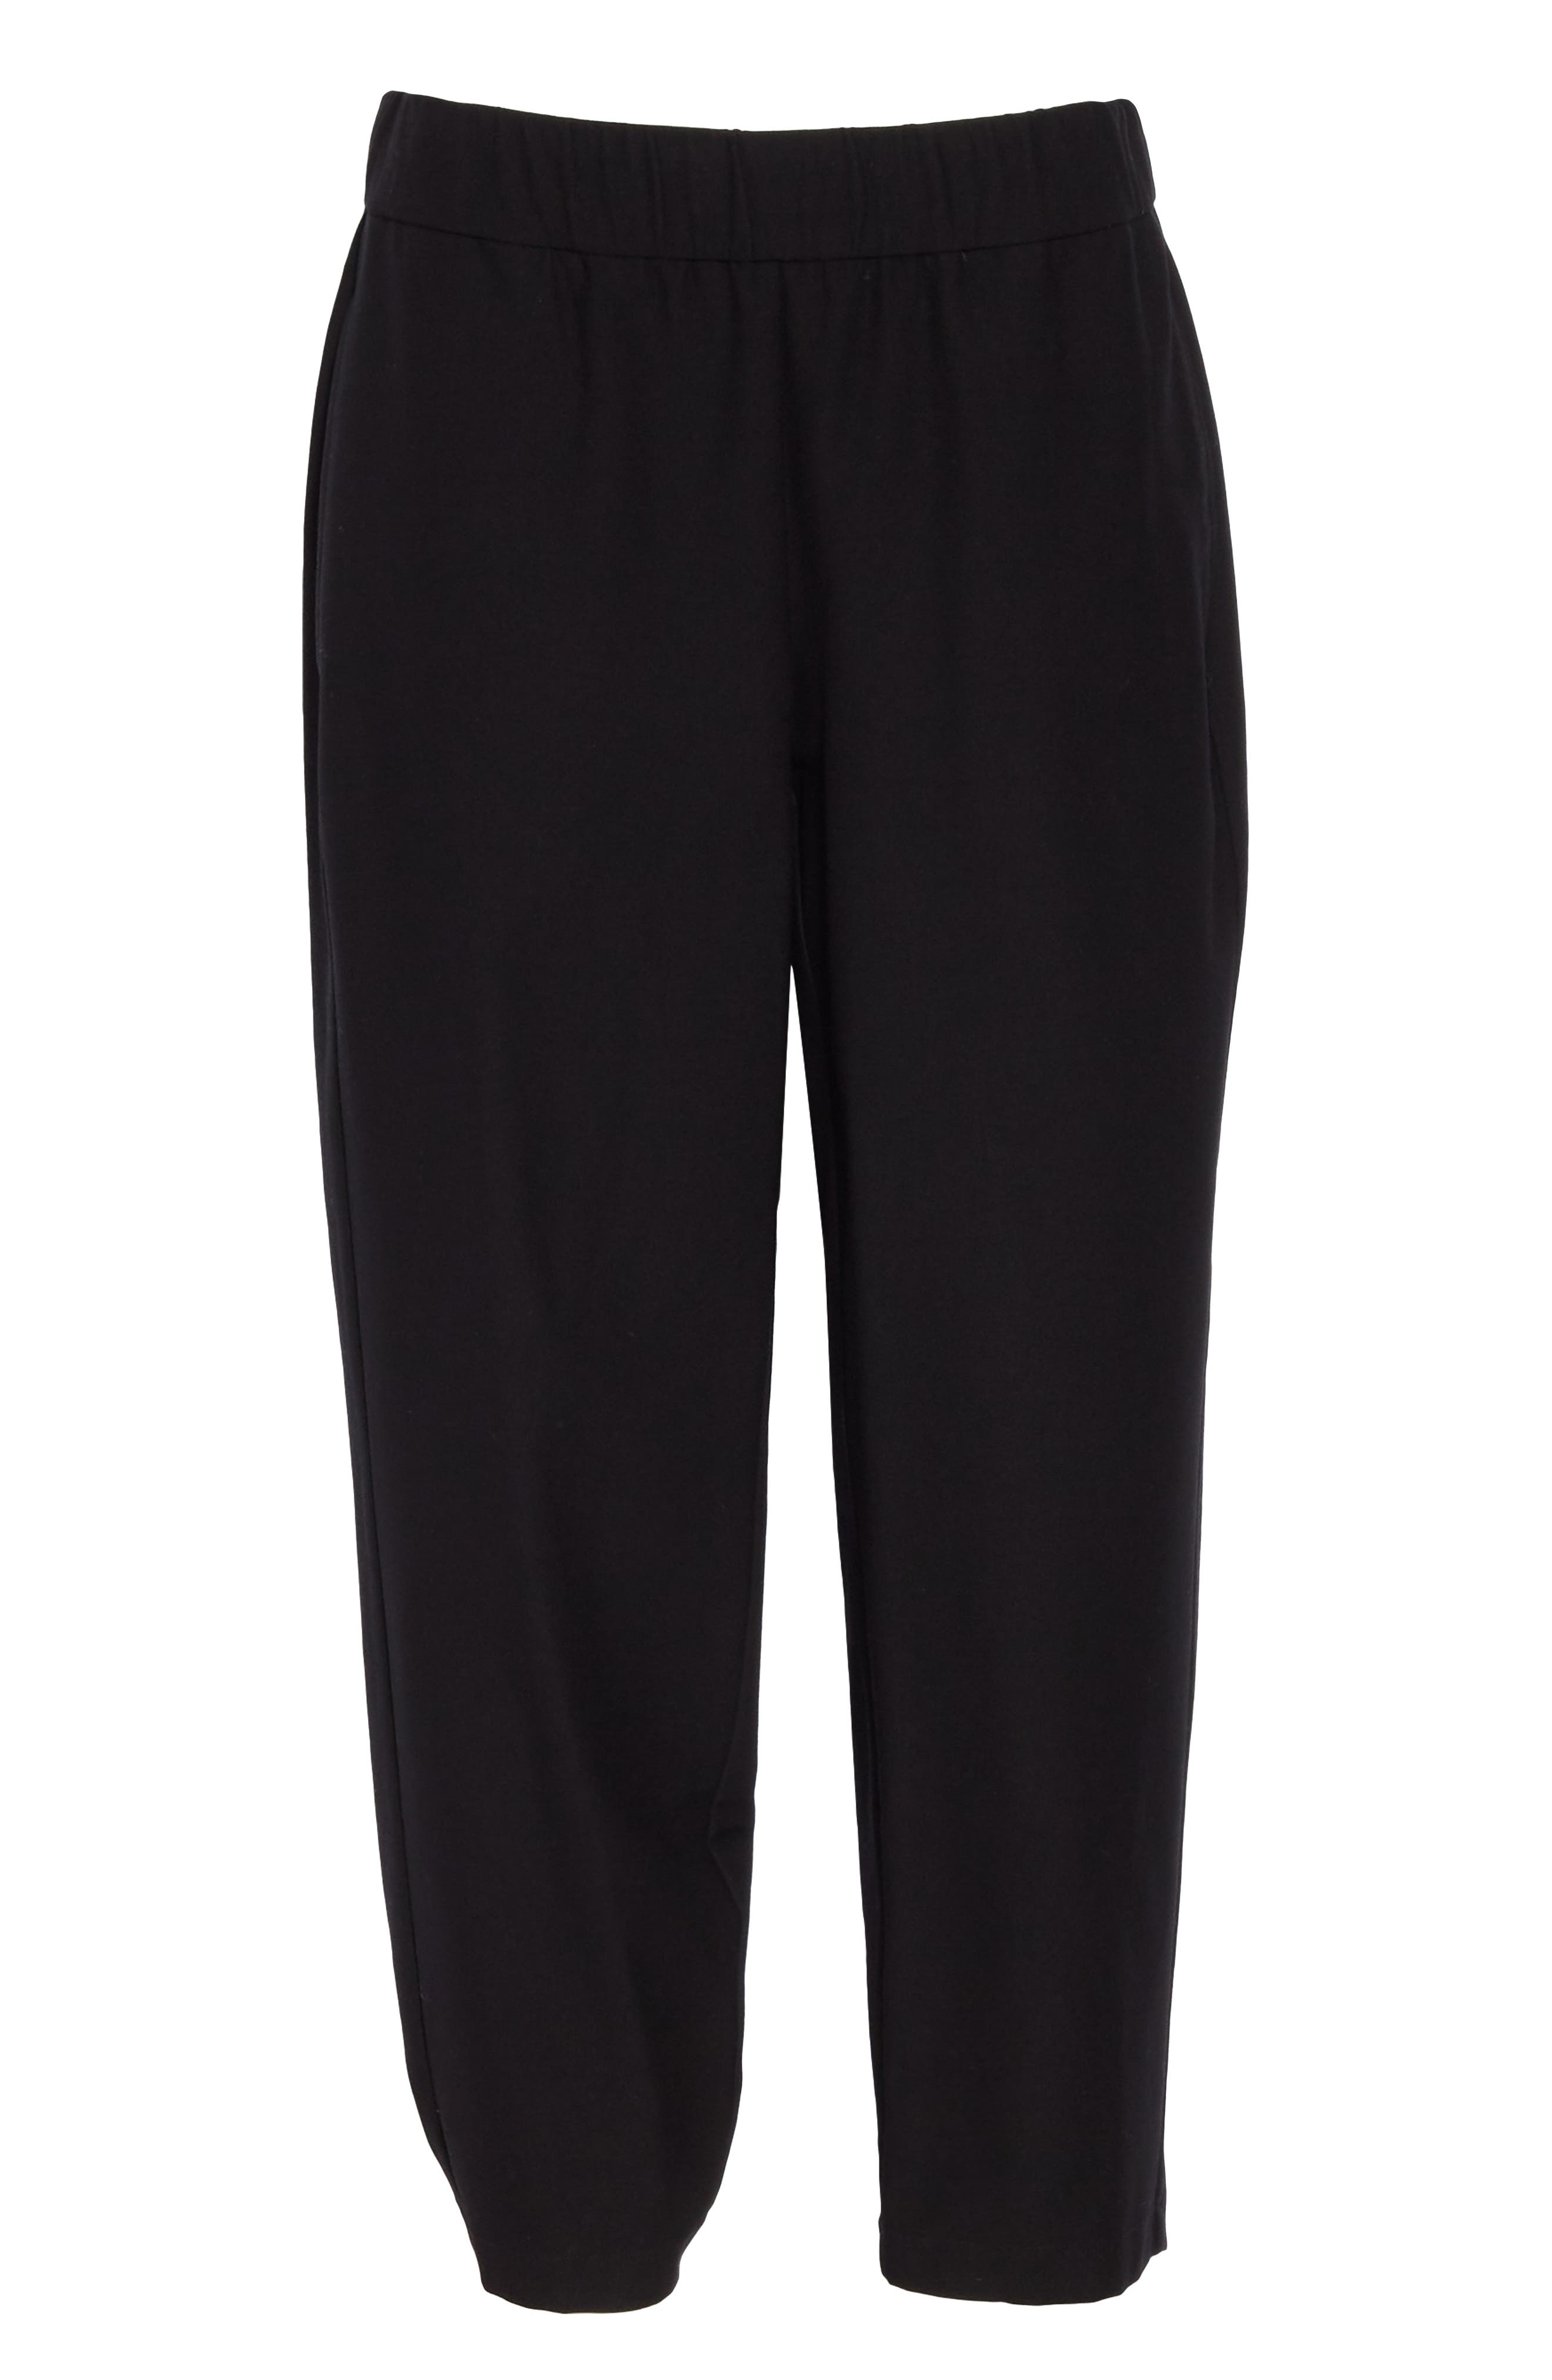 EILEEN FISHER, Tapered Ankle Pants, Alternate thumbnail 7, color, BLACK